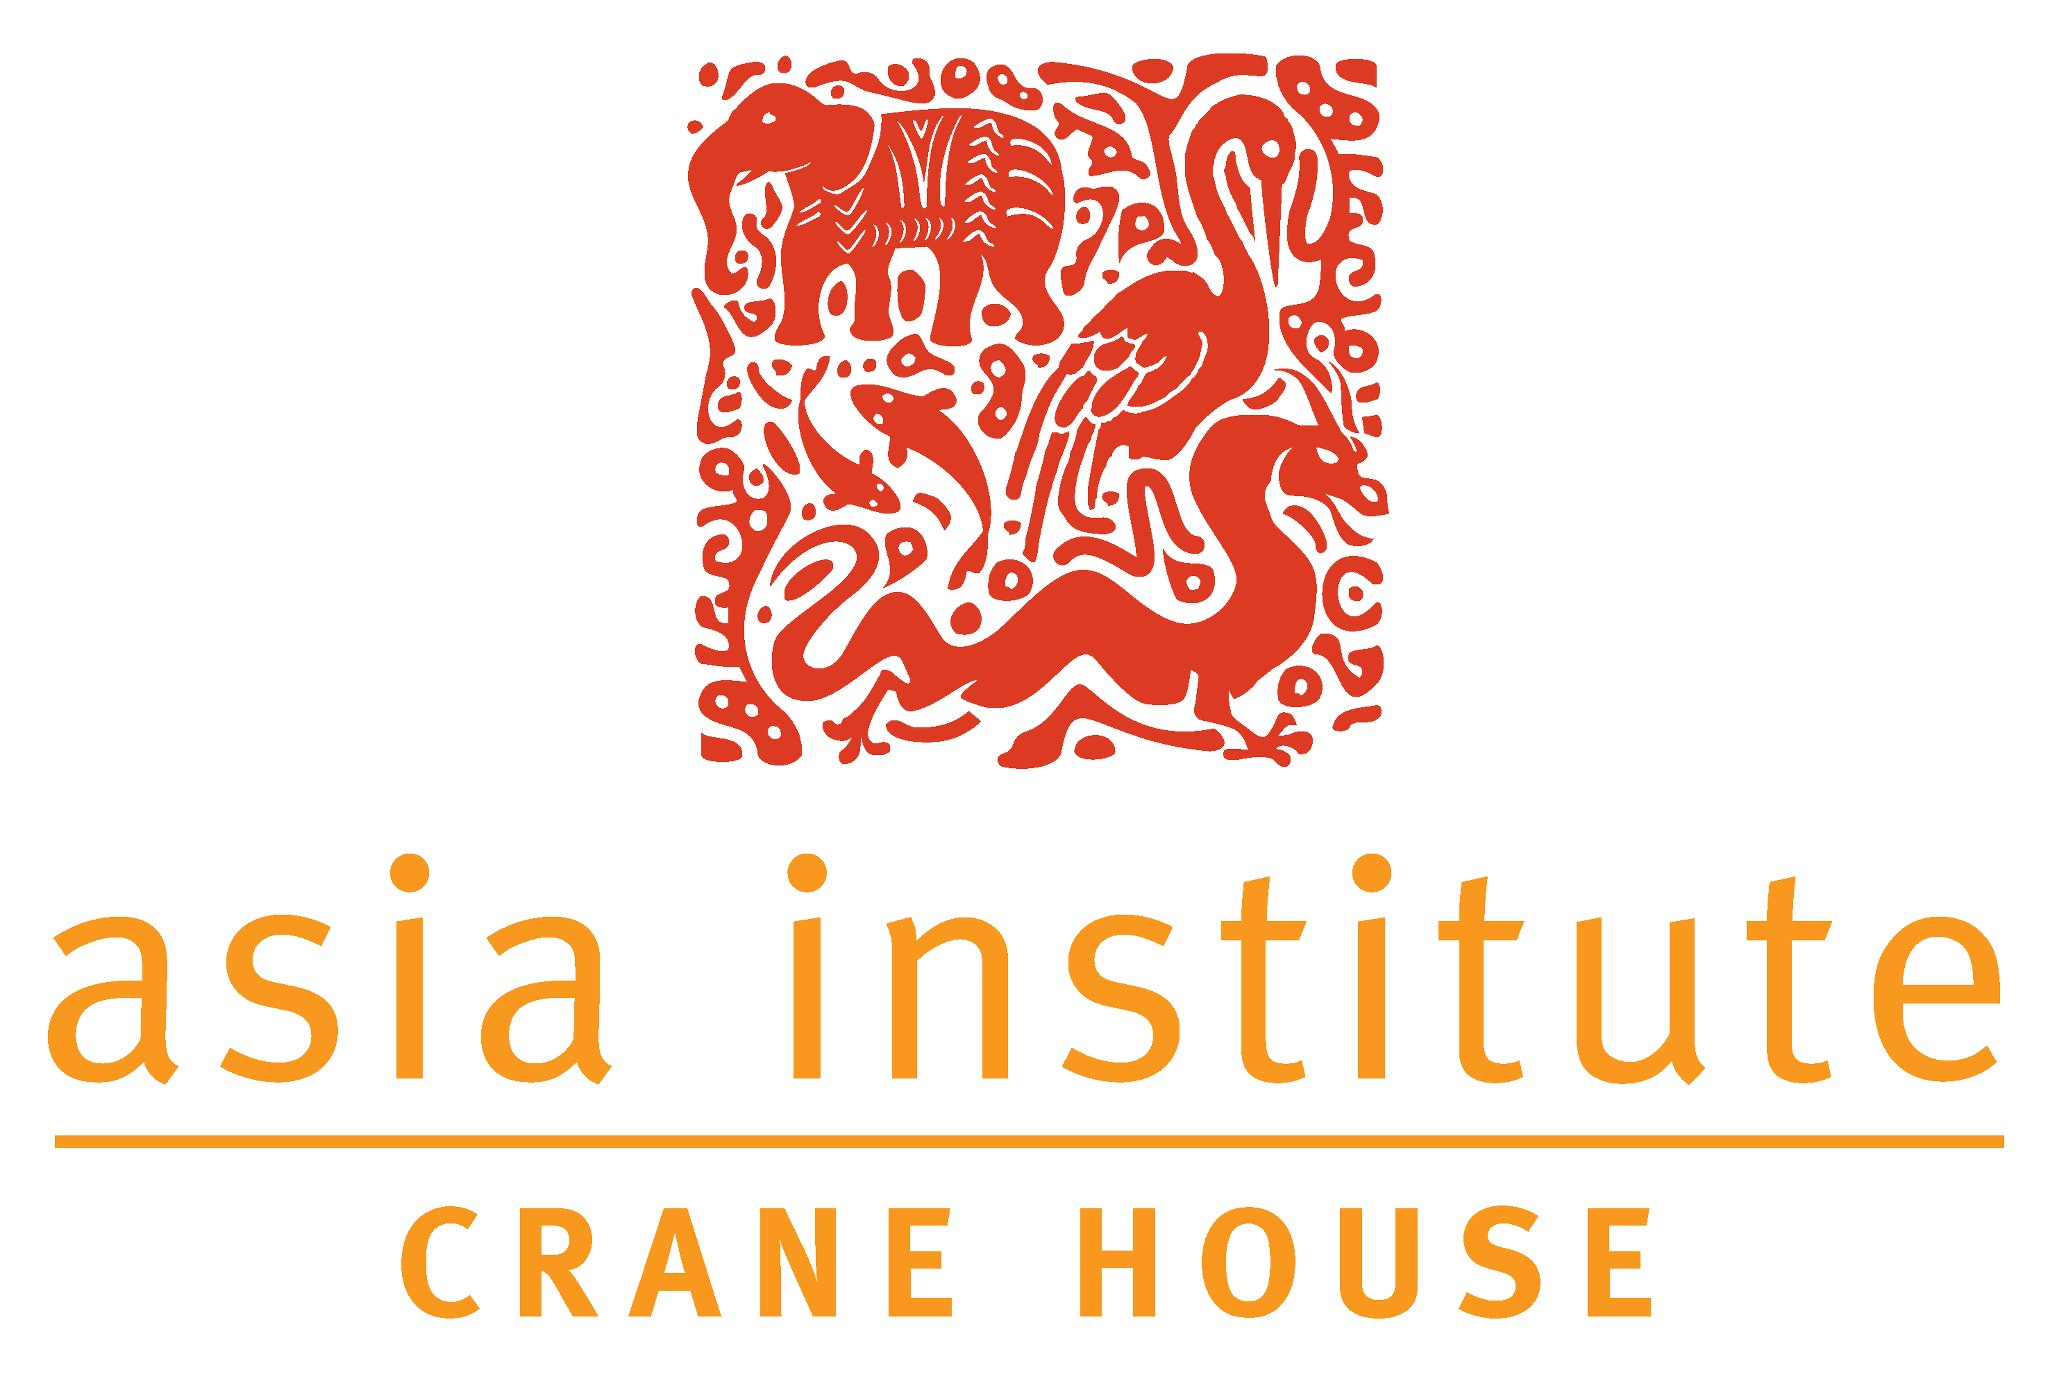 The Asia Institute Crane House was established in 1987 and offers a variety of programs throughout the year.